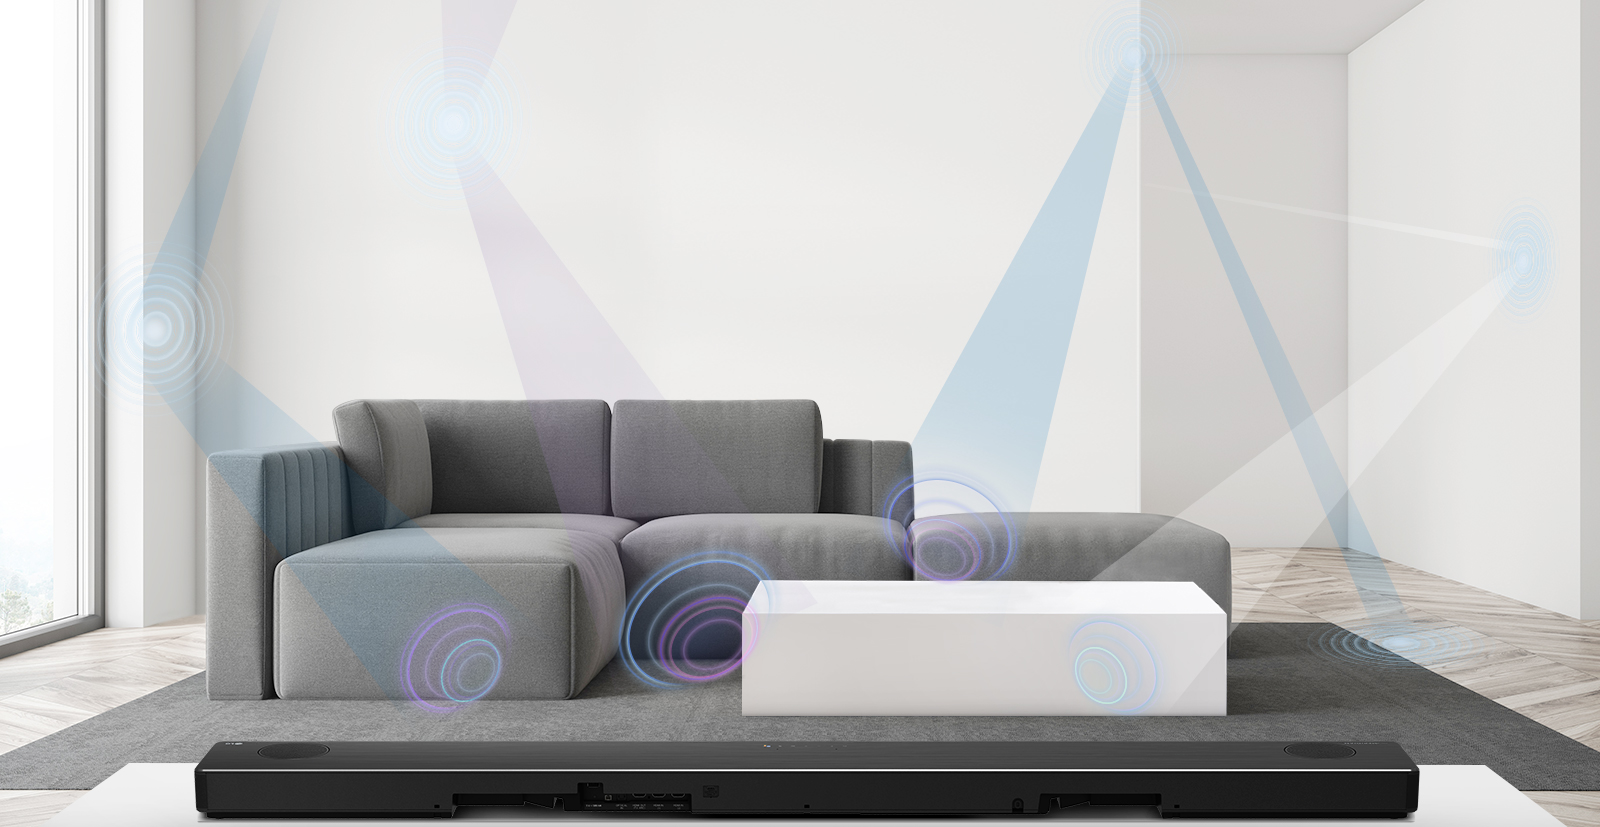 A concept image visualizing the LG SoundBar model SN11RG's AI Room Calibration feature optimizing sound for the living room